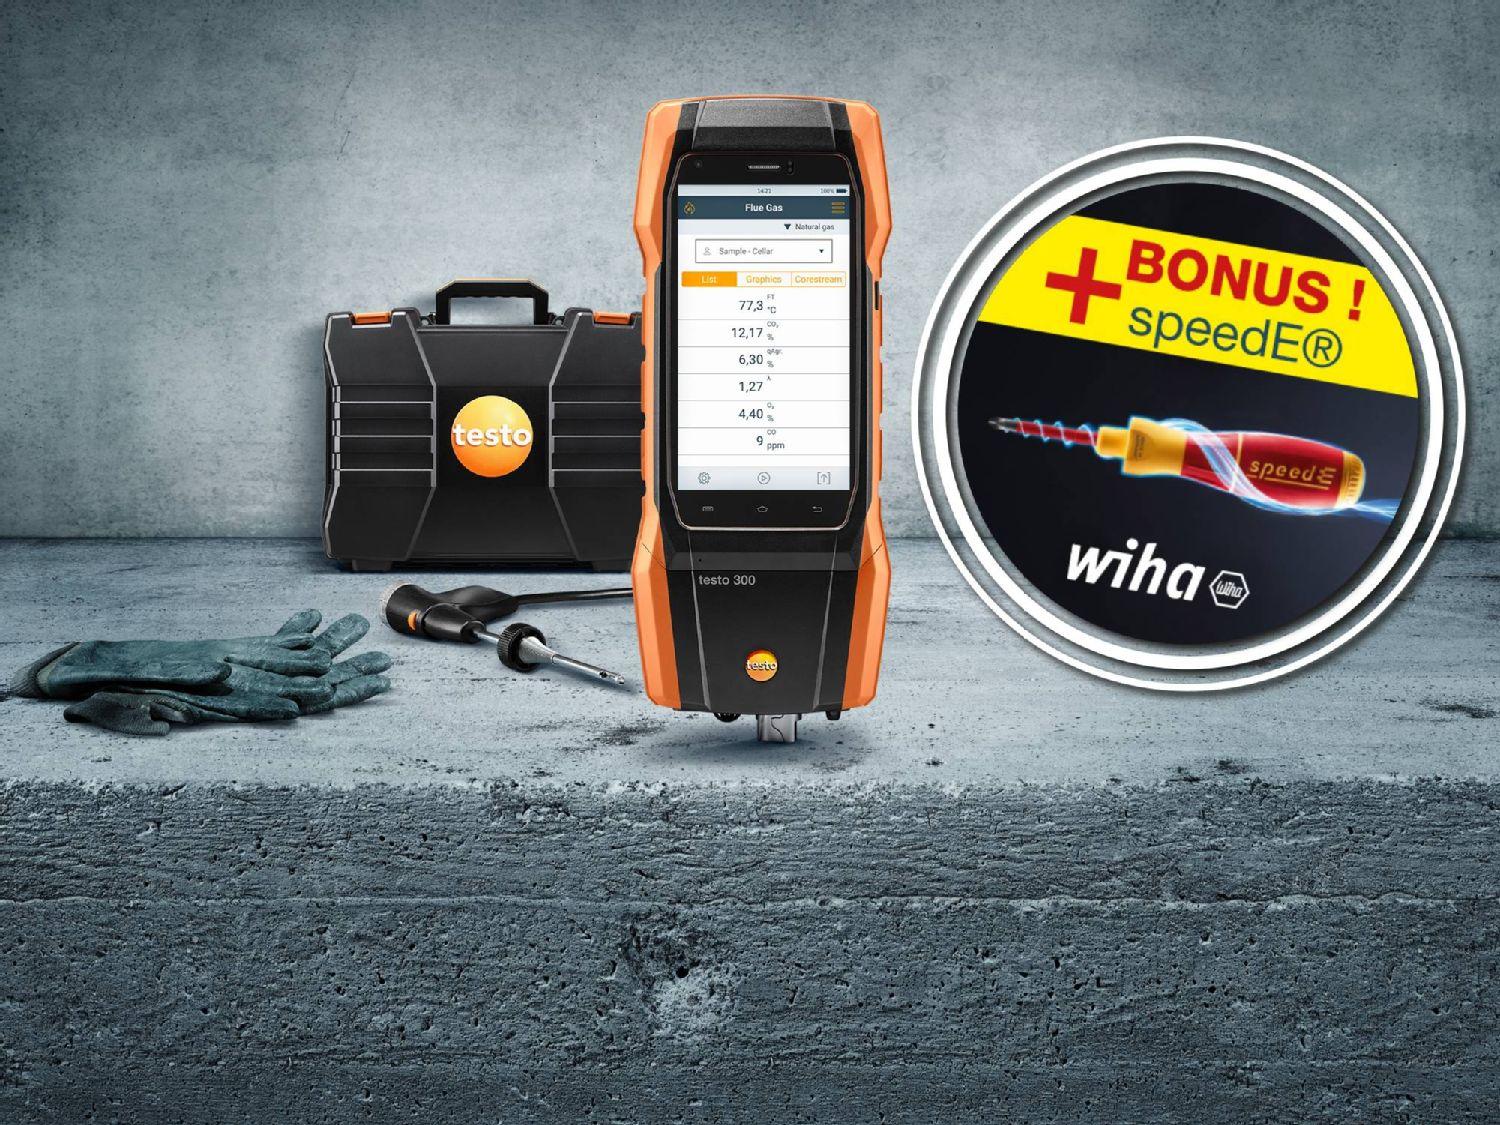 Kit promotionnel testo 300 et kit tournevis speedE® de Wiha